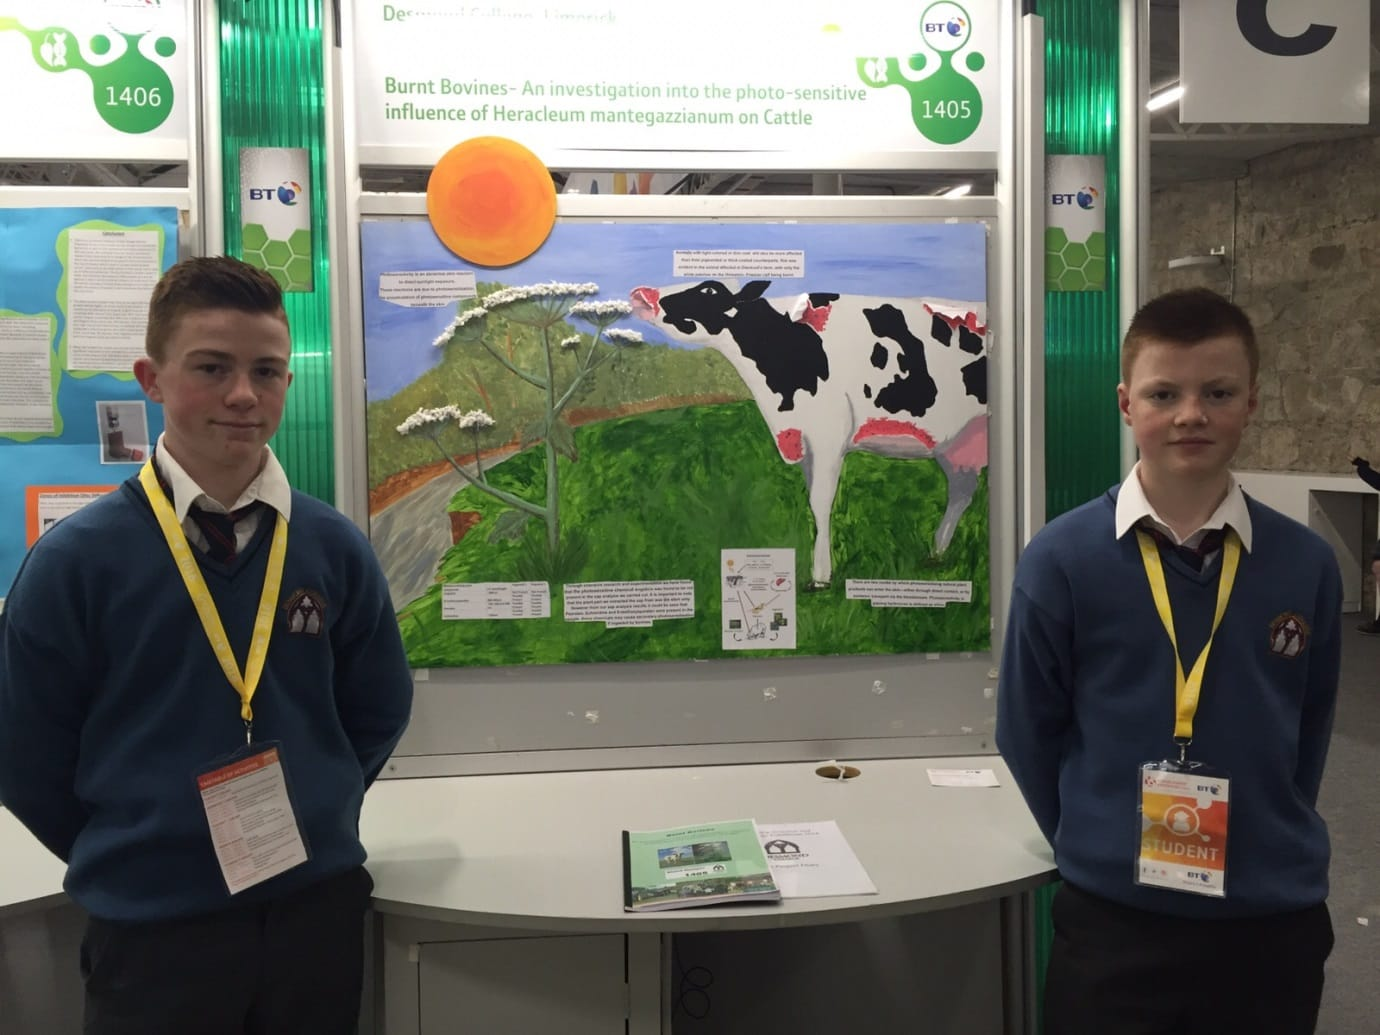 Jan 2016: Jack Corkery and Diarmuid O Flynn and their project that helps explain the effects of giant hogweed on cattle